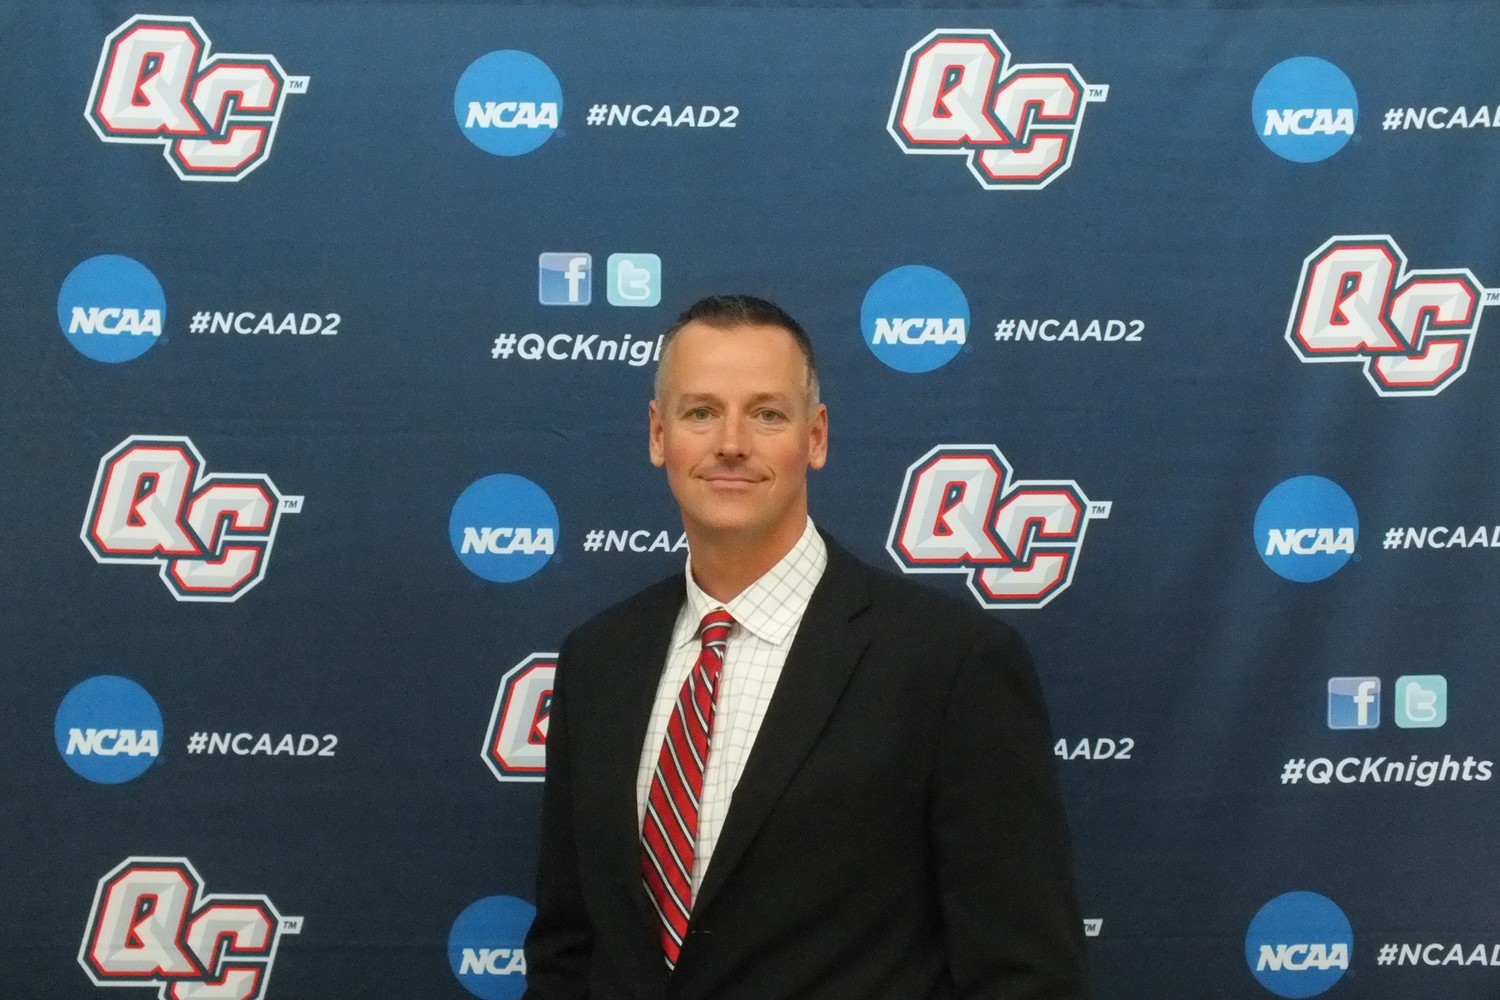 Robert Twible will be replacing China Jude as the director of athletics at Queens College while the institution finds a permanent replacement.